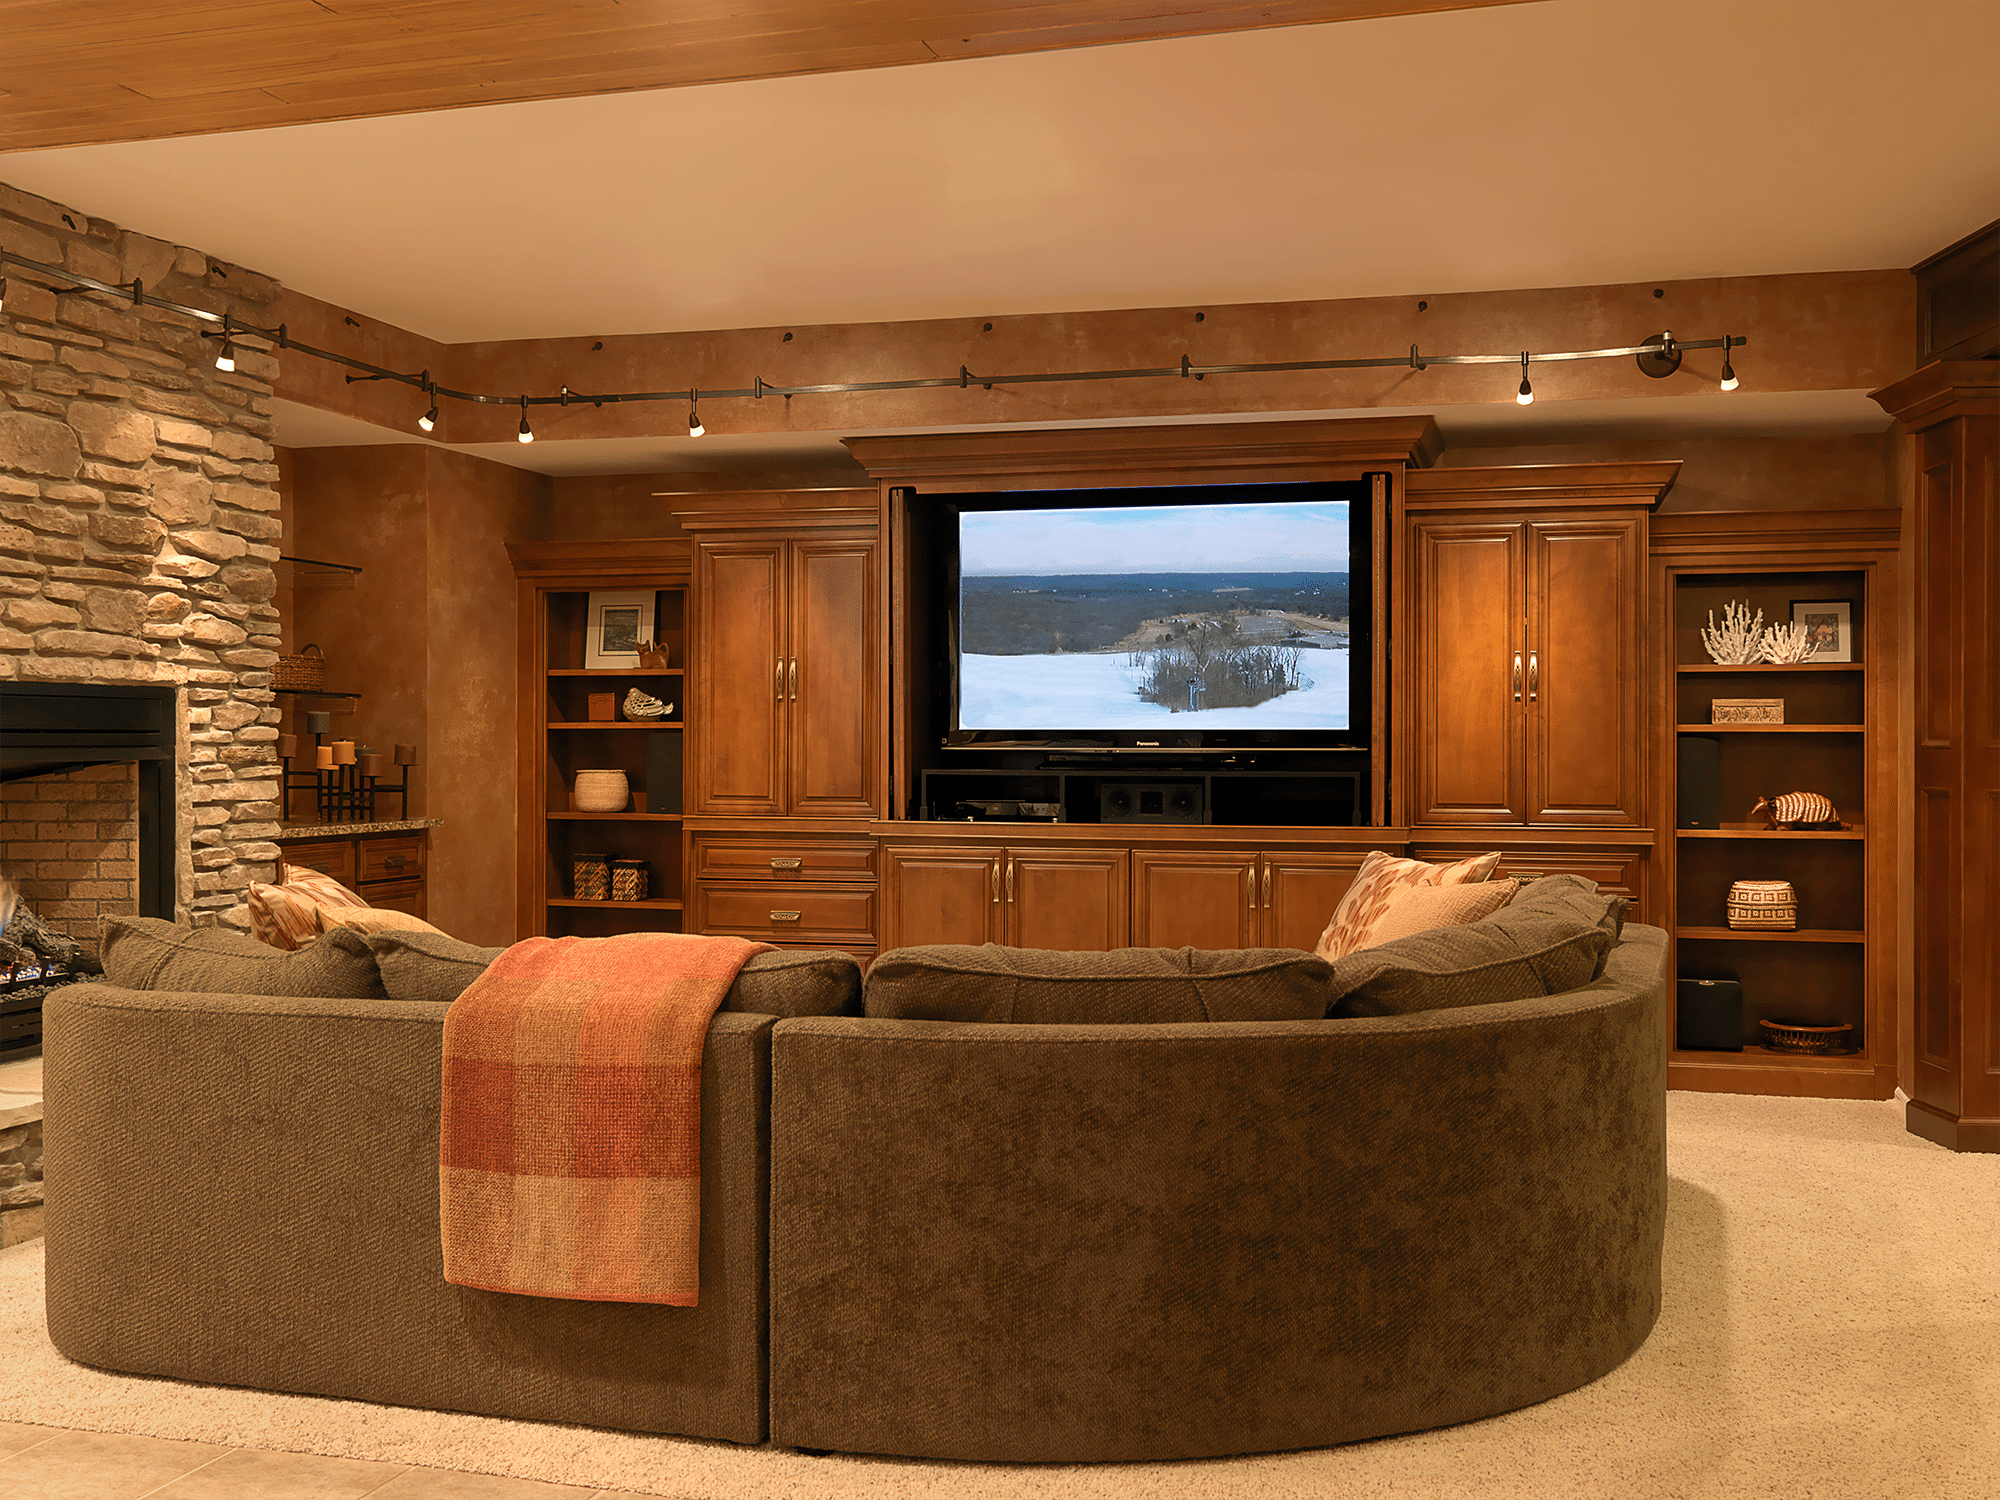 Black flat screen TV on wooden entertainment center